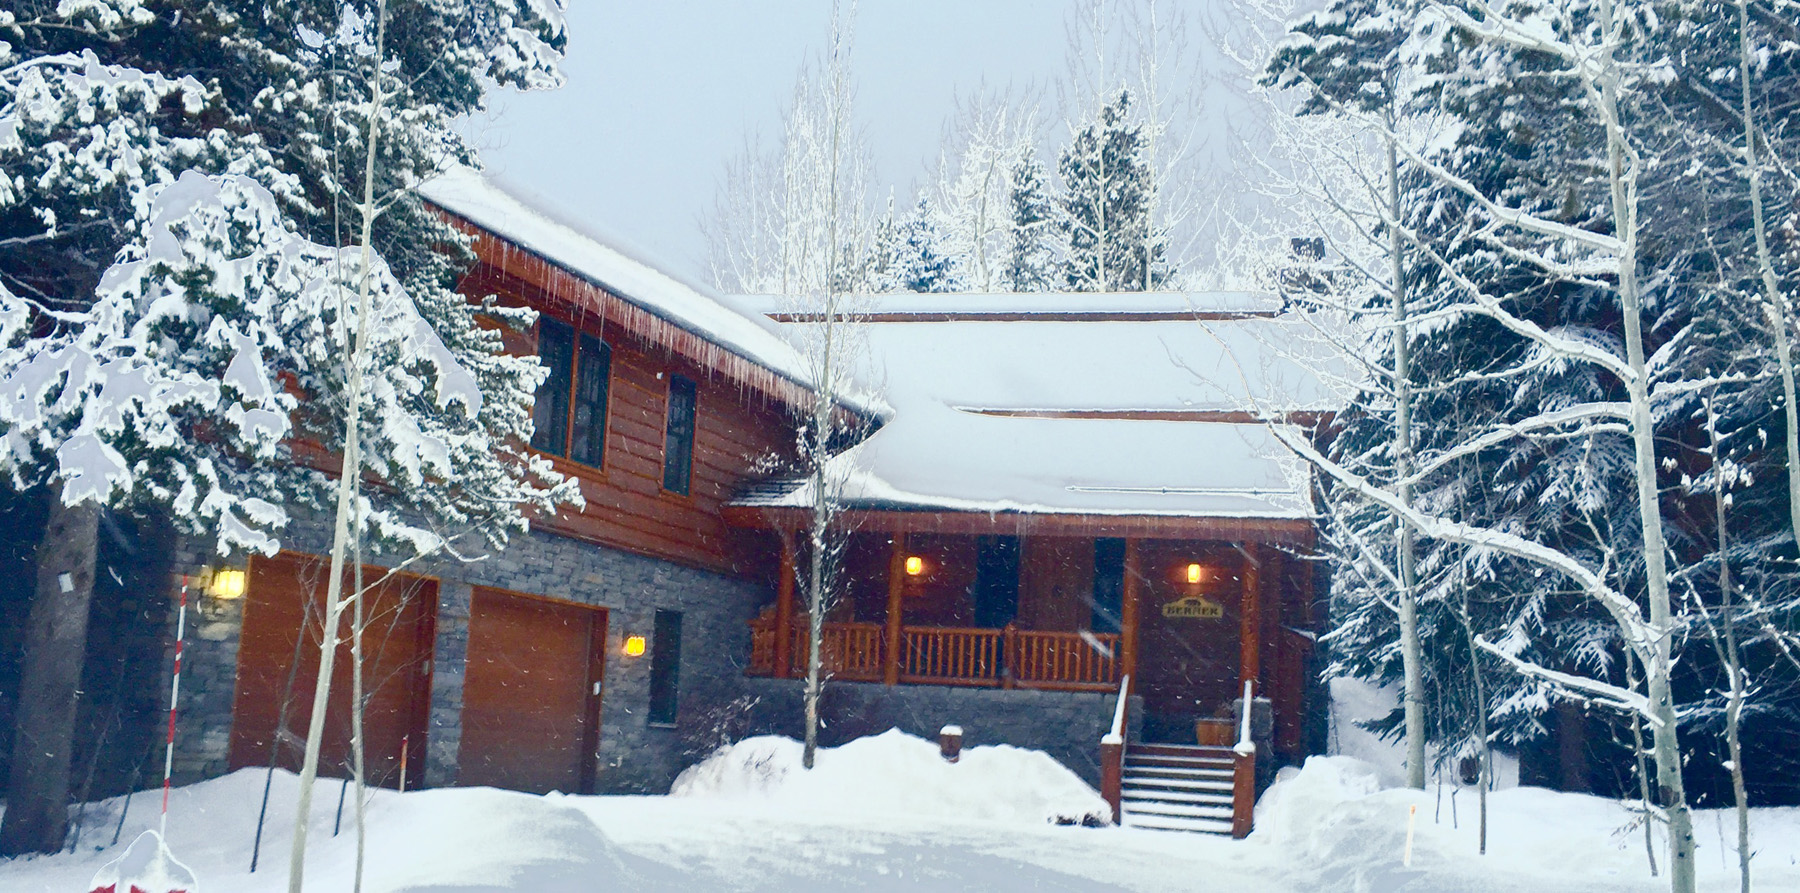 단독 가정 주택 용 매매 에 Granite Ridge Homestead 3153 Arrowhead Rd Teton Village, 와이오밍, 83025 Jackson Hole, 미국